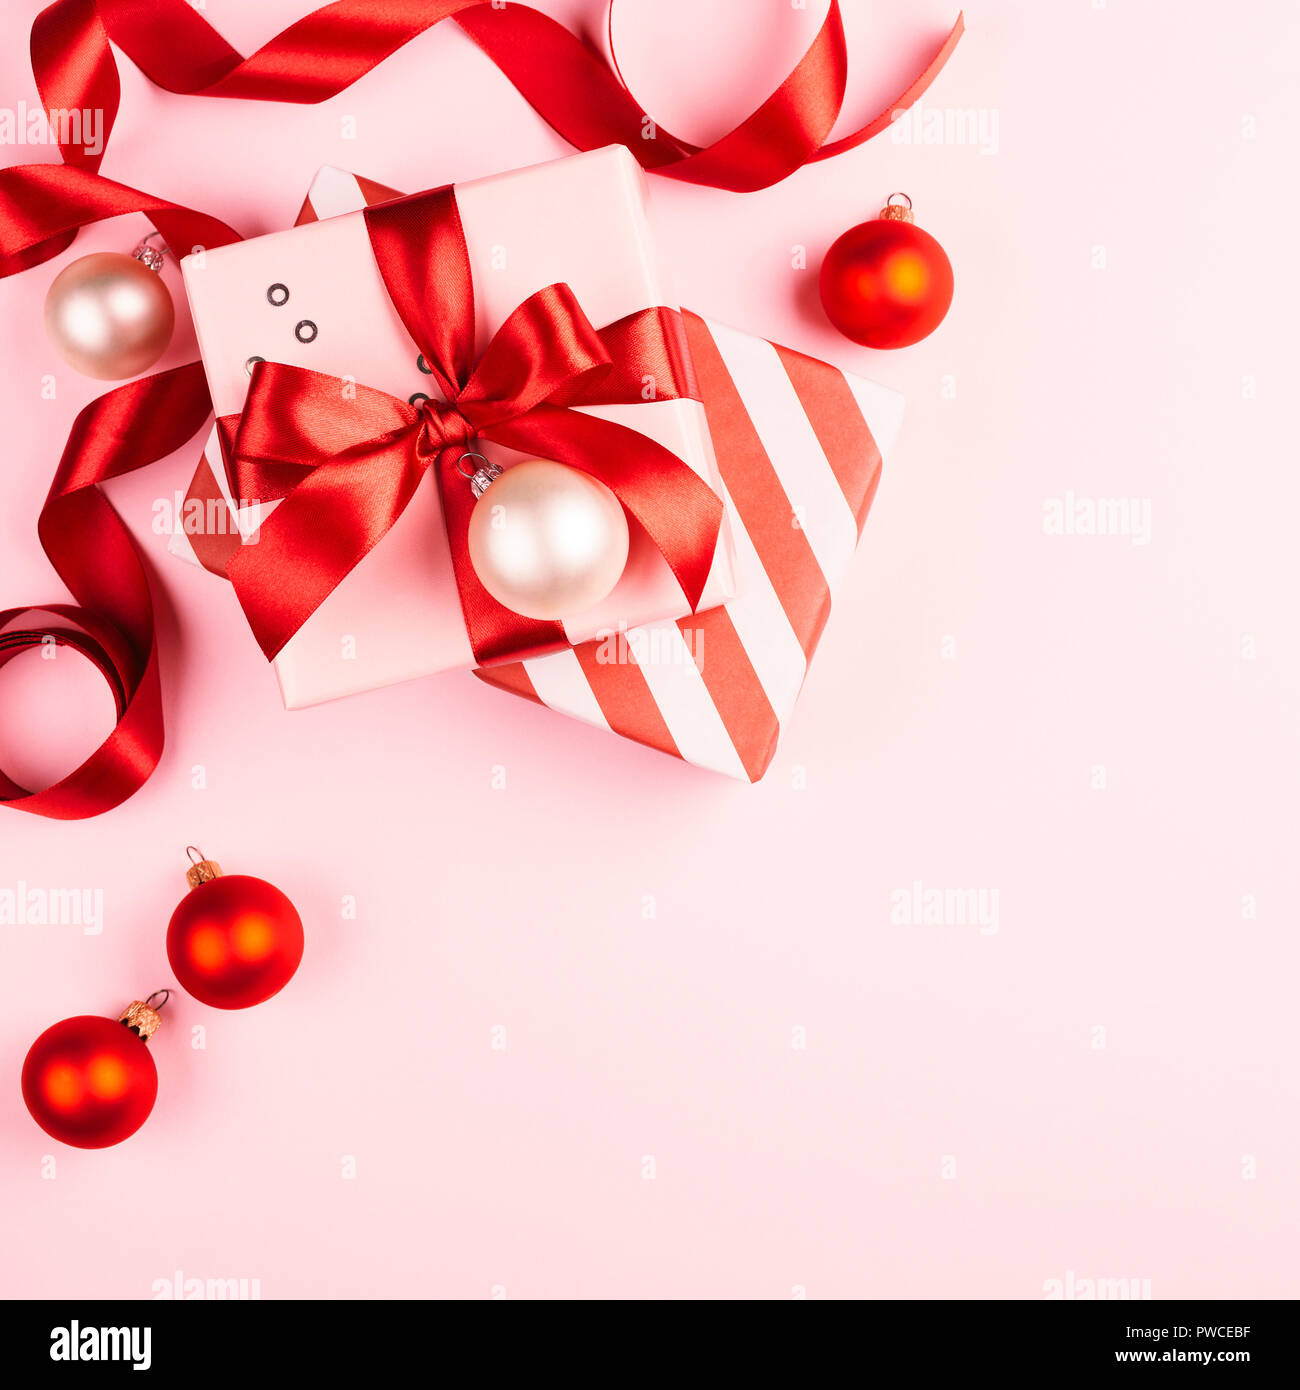 christmas gifts with red ribbon on pink background with decorations beautiful composition with gift boxes holiday background with copy space